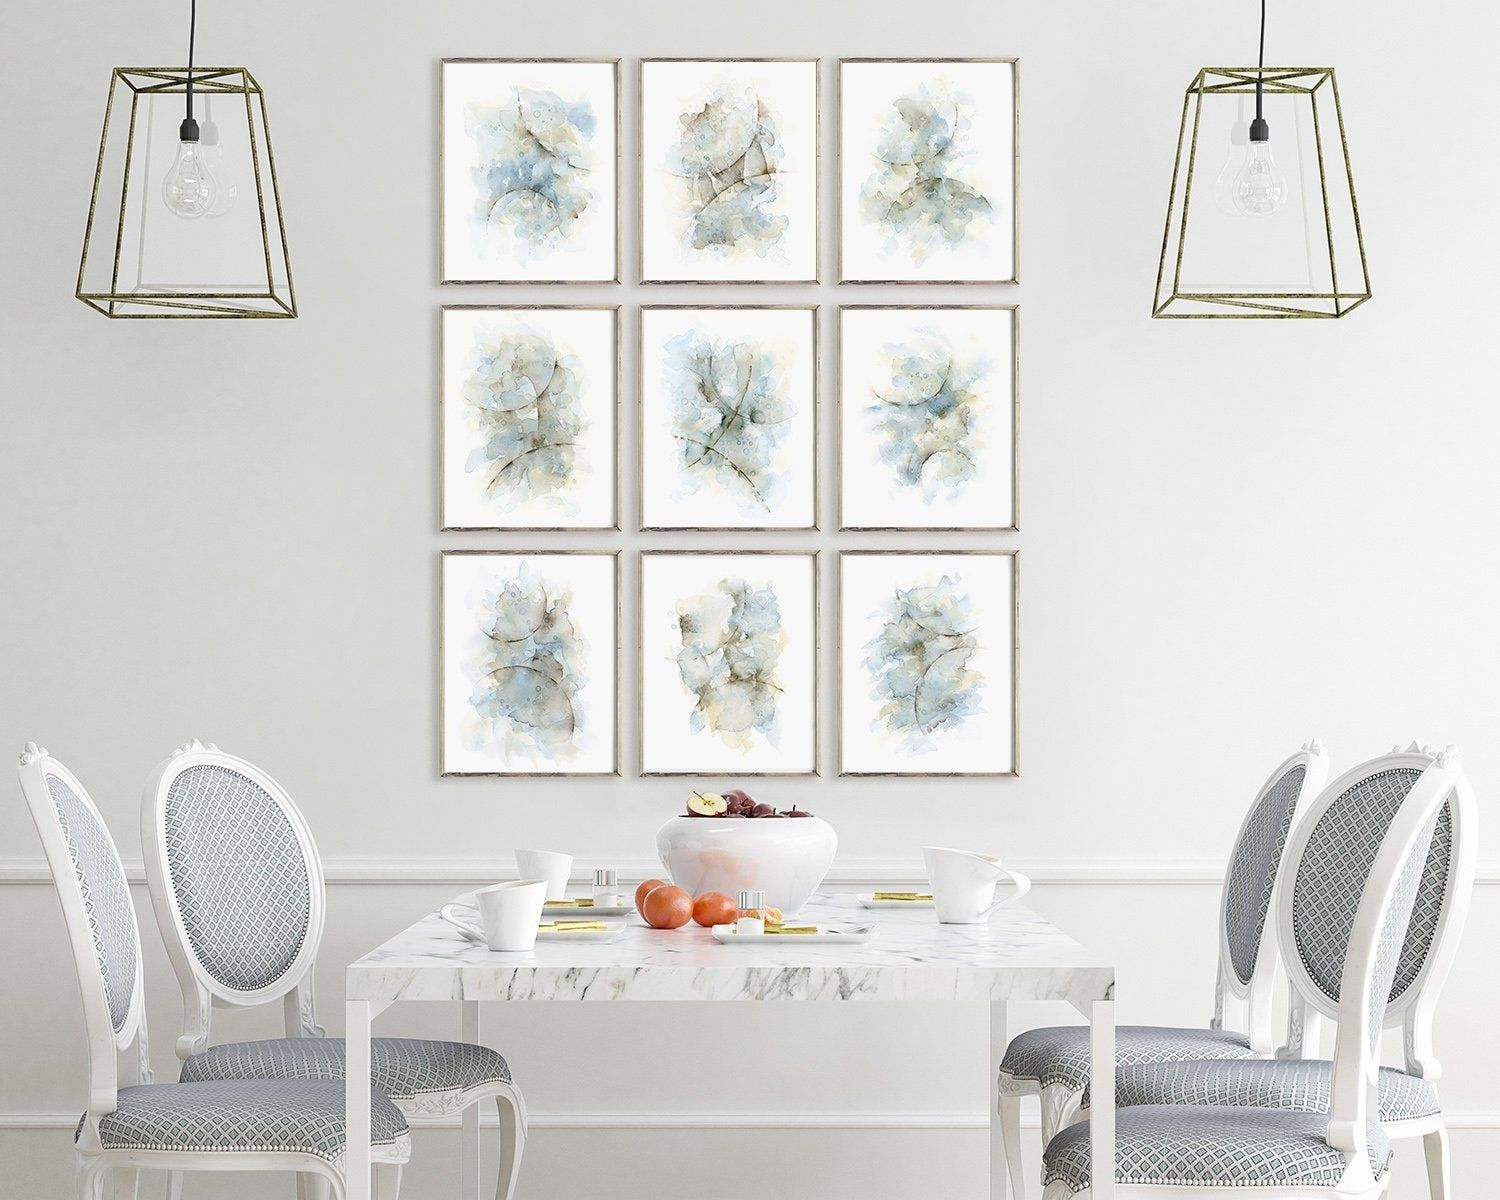 Abstract Painting Gallery Wall Set Of 9 Prints Dining Room Etsy